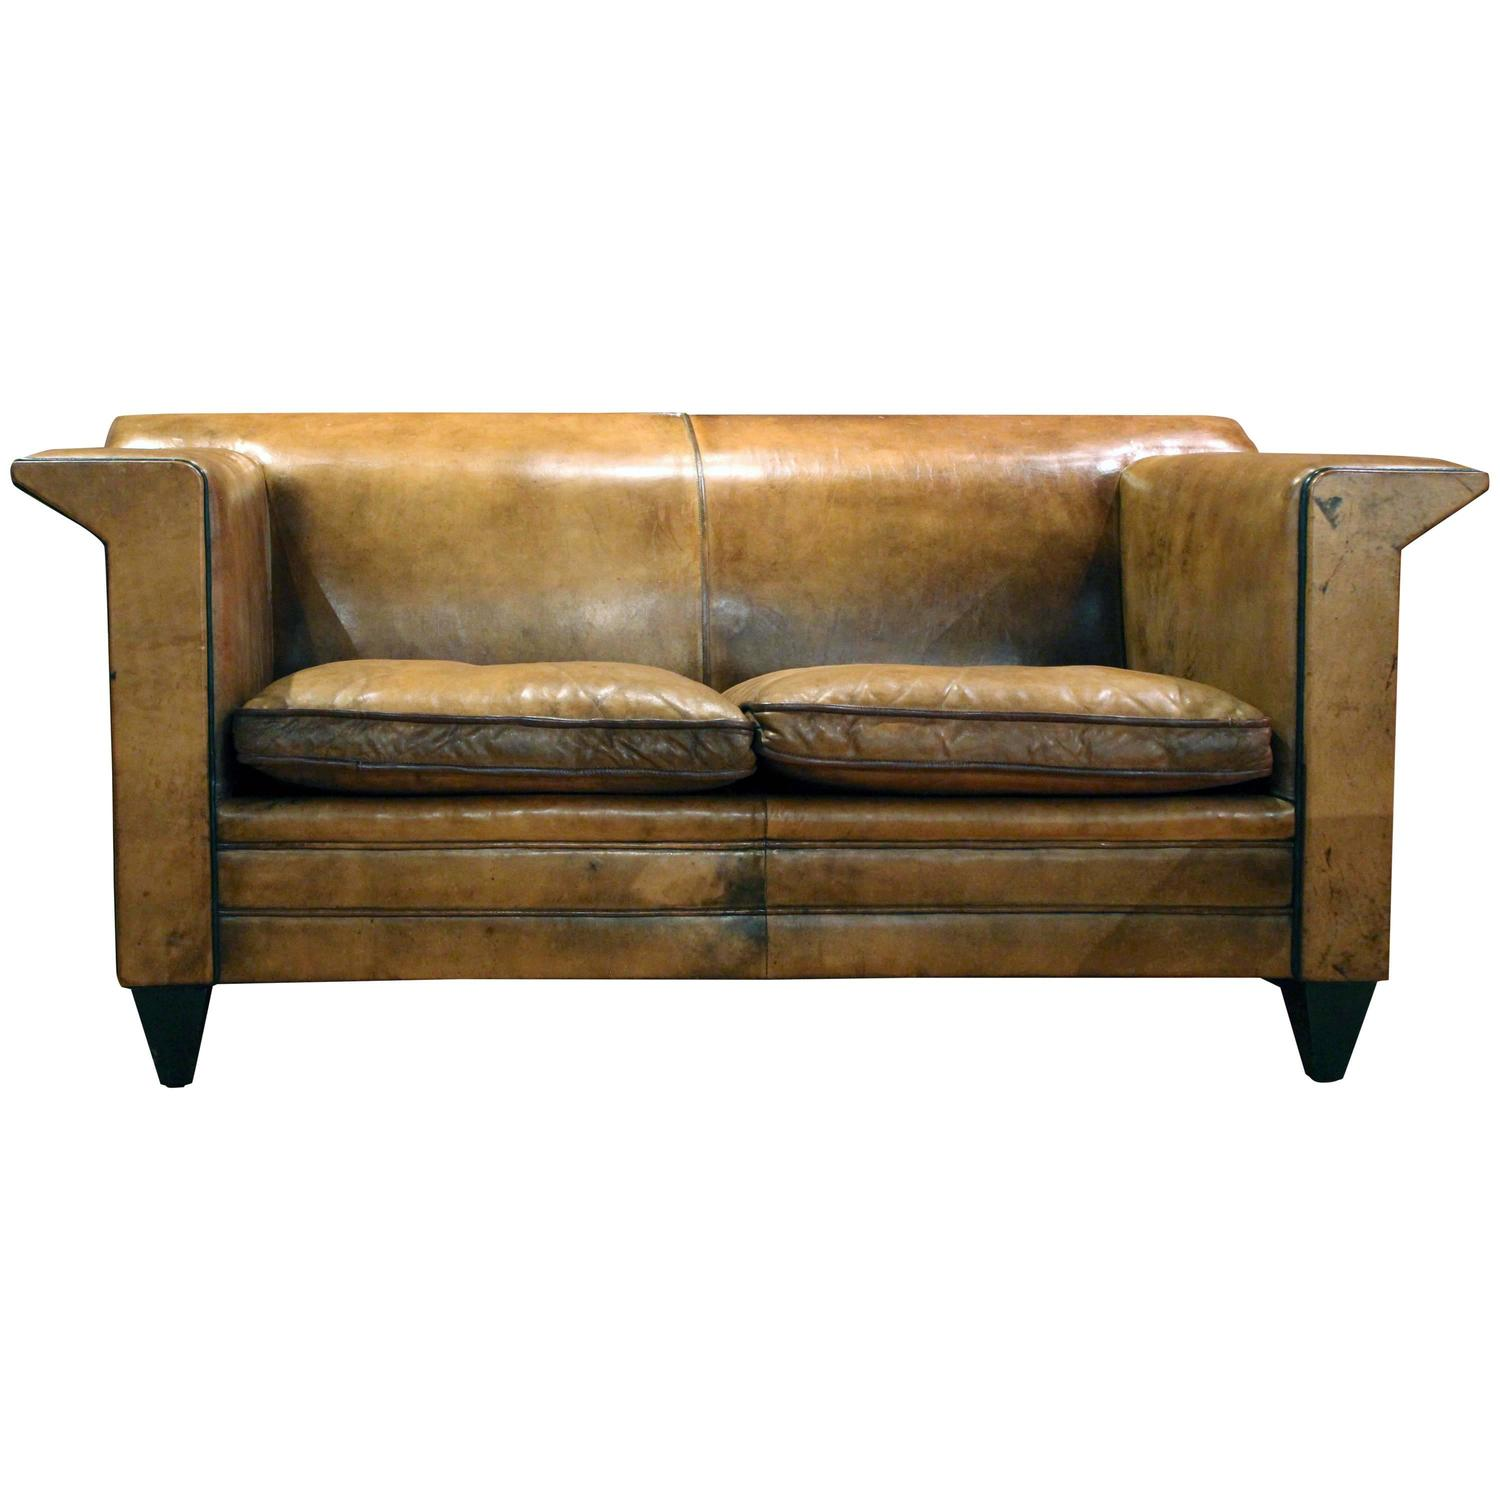 where to buy sofa seat for van futon bed chicago dutch leather by bart bekhoven at 1stdibs